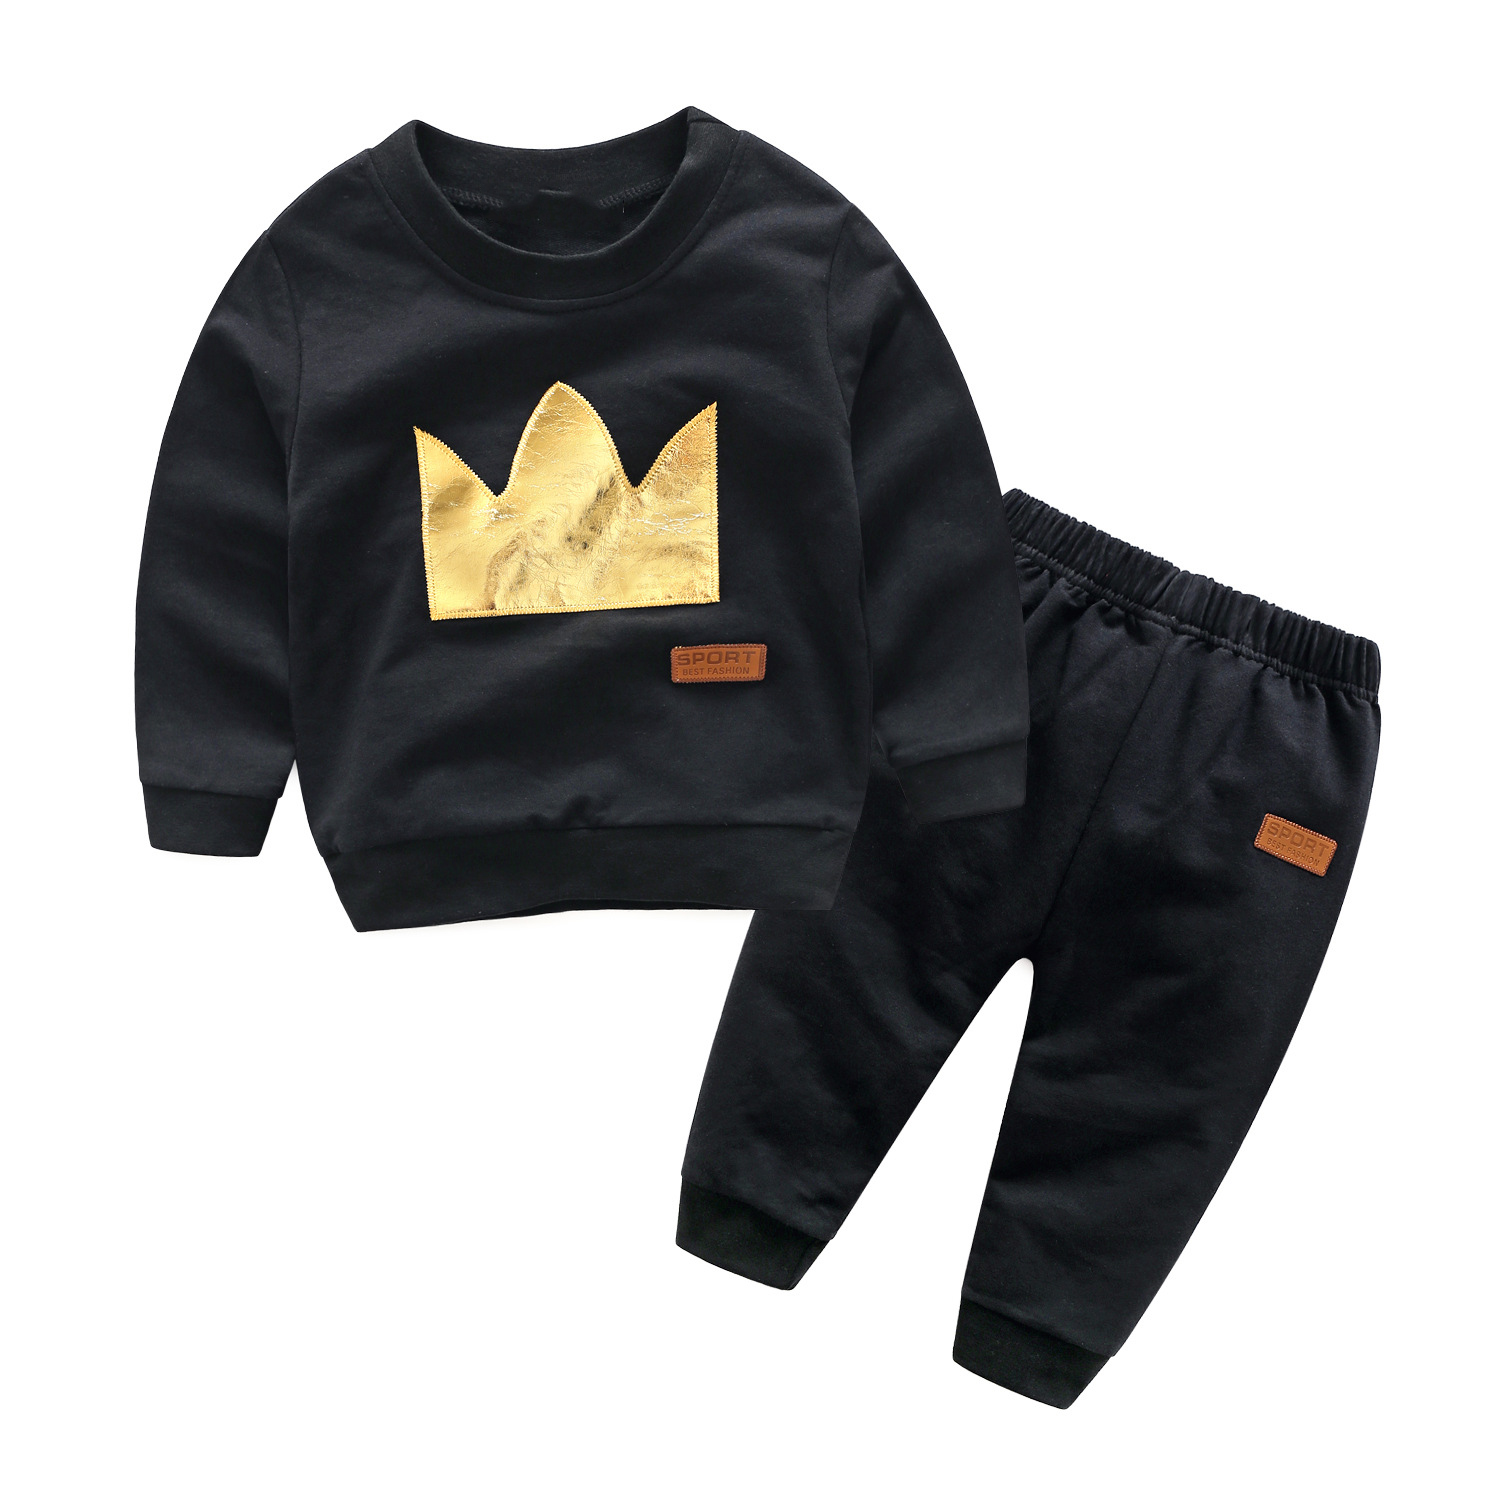 Spring Autumn Baby Sets Boys Black Long Sleeve Yellow Crown Casual Cotton Sets T-shirt + Pants Baby Clothes Sets<br>